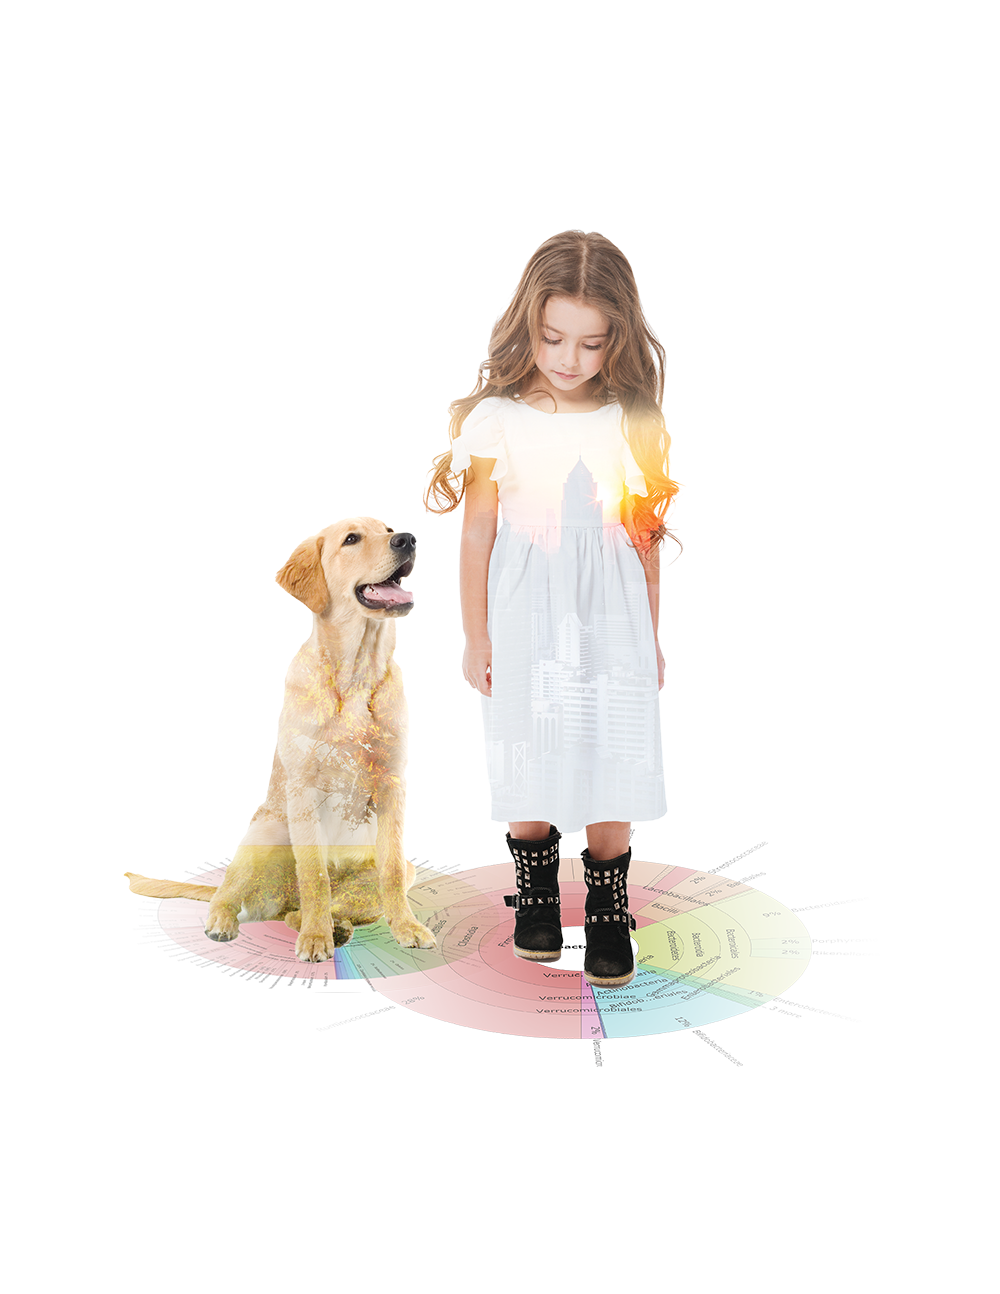 microbiomics girl and dog background